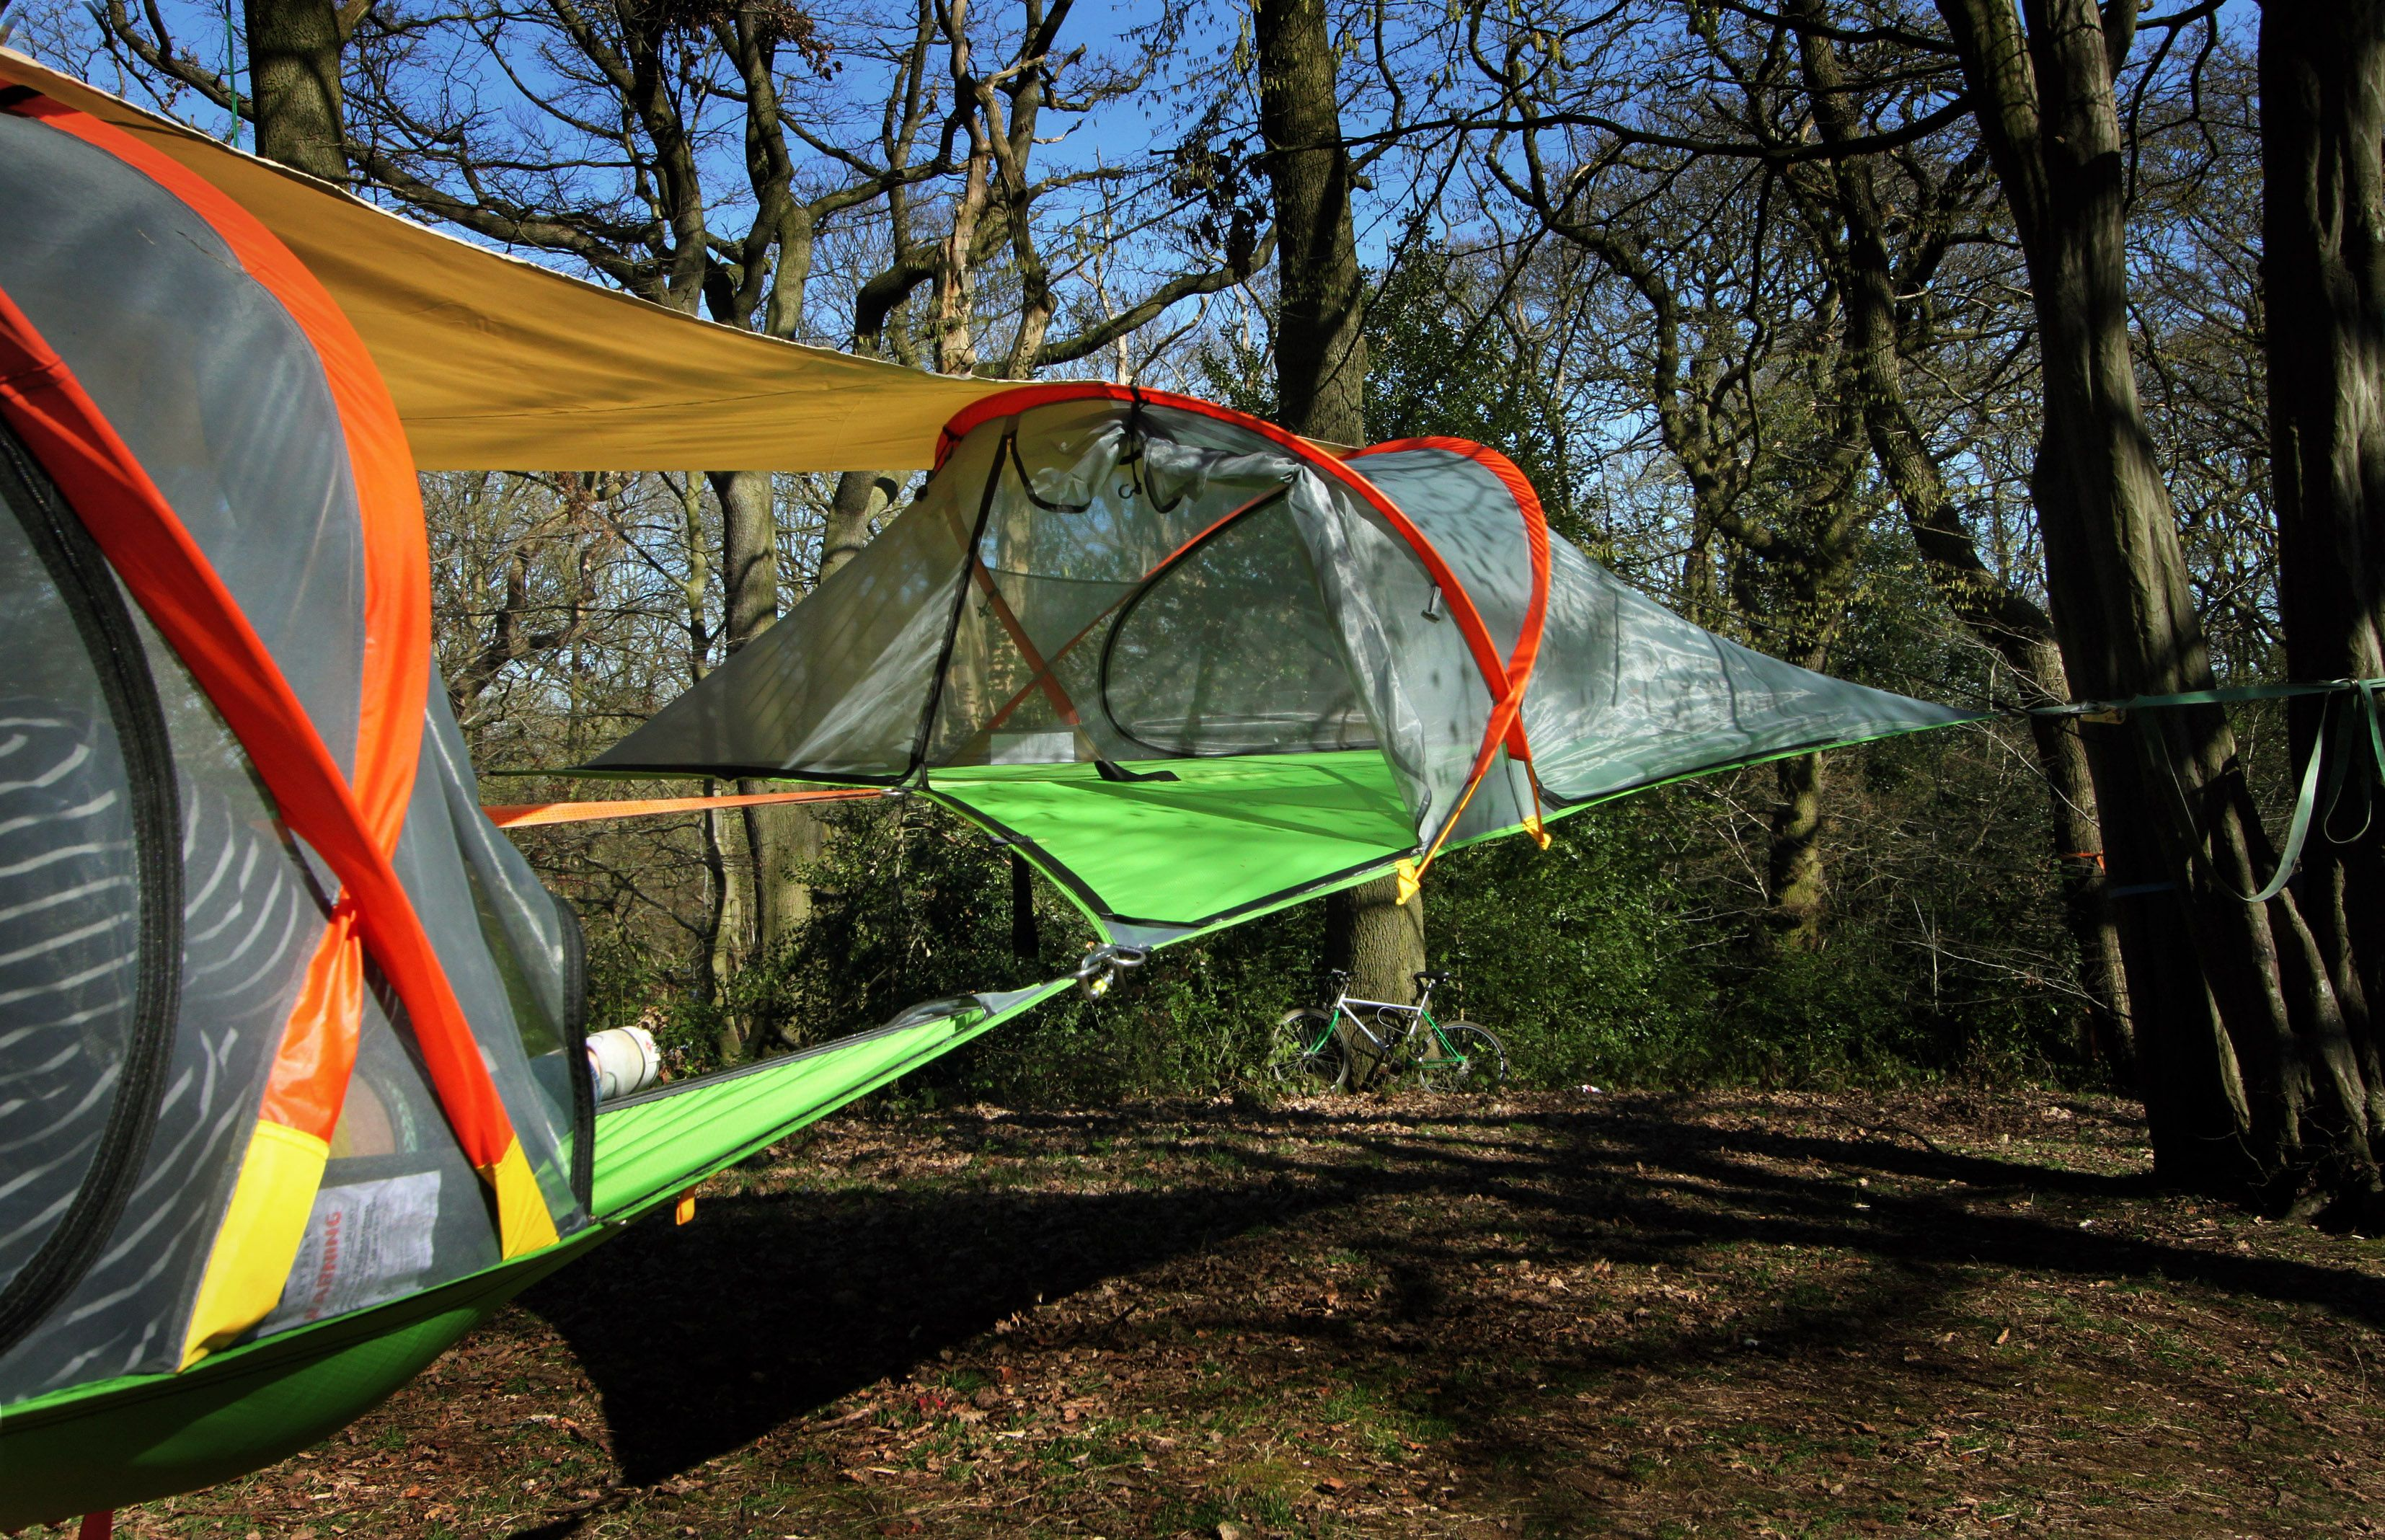 to welcome tent img backyard granddaughter tentsile community tree stingray hammock s discussions